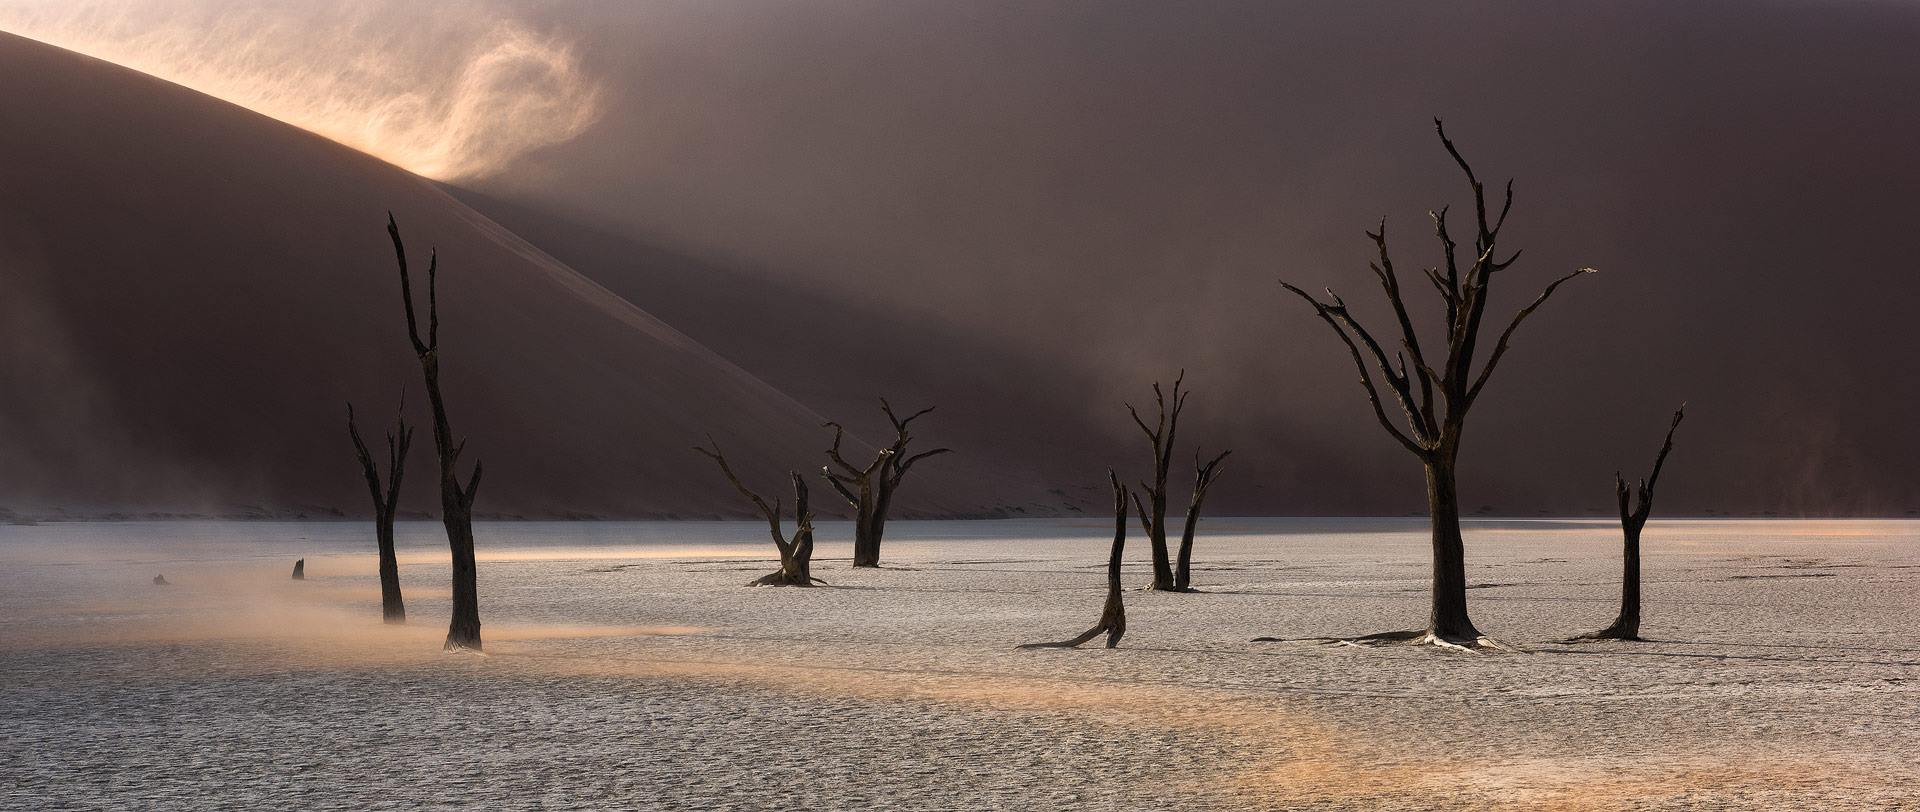 http://www.c4photosafaris.com/uploader/images/A_Namibia_2_.jpg